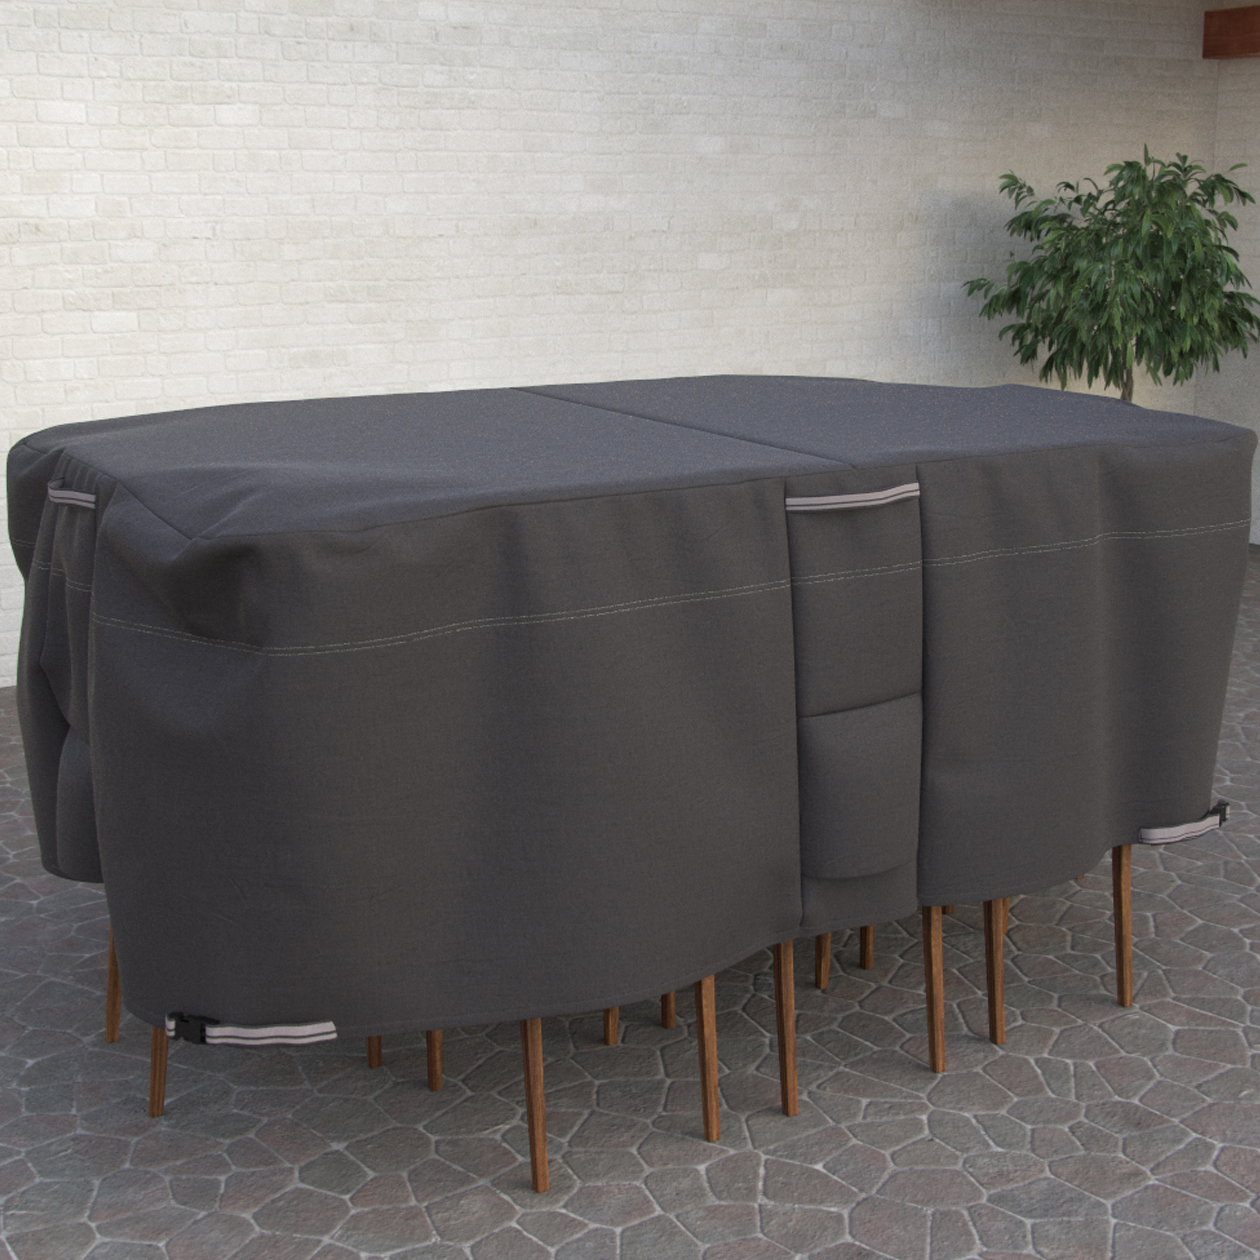 Taupe Collection Oval Rectangle Patio Table And Chair Cover Premium Outdoor Furniture Cover With Durable And Water Resistant Fabric Large with regard to proportions 1260 X 1260